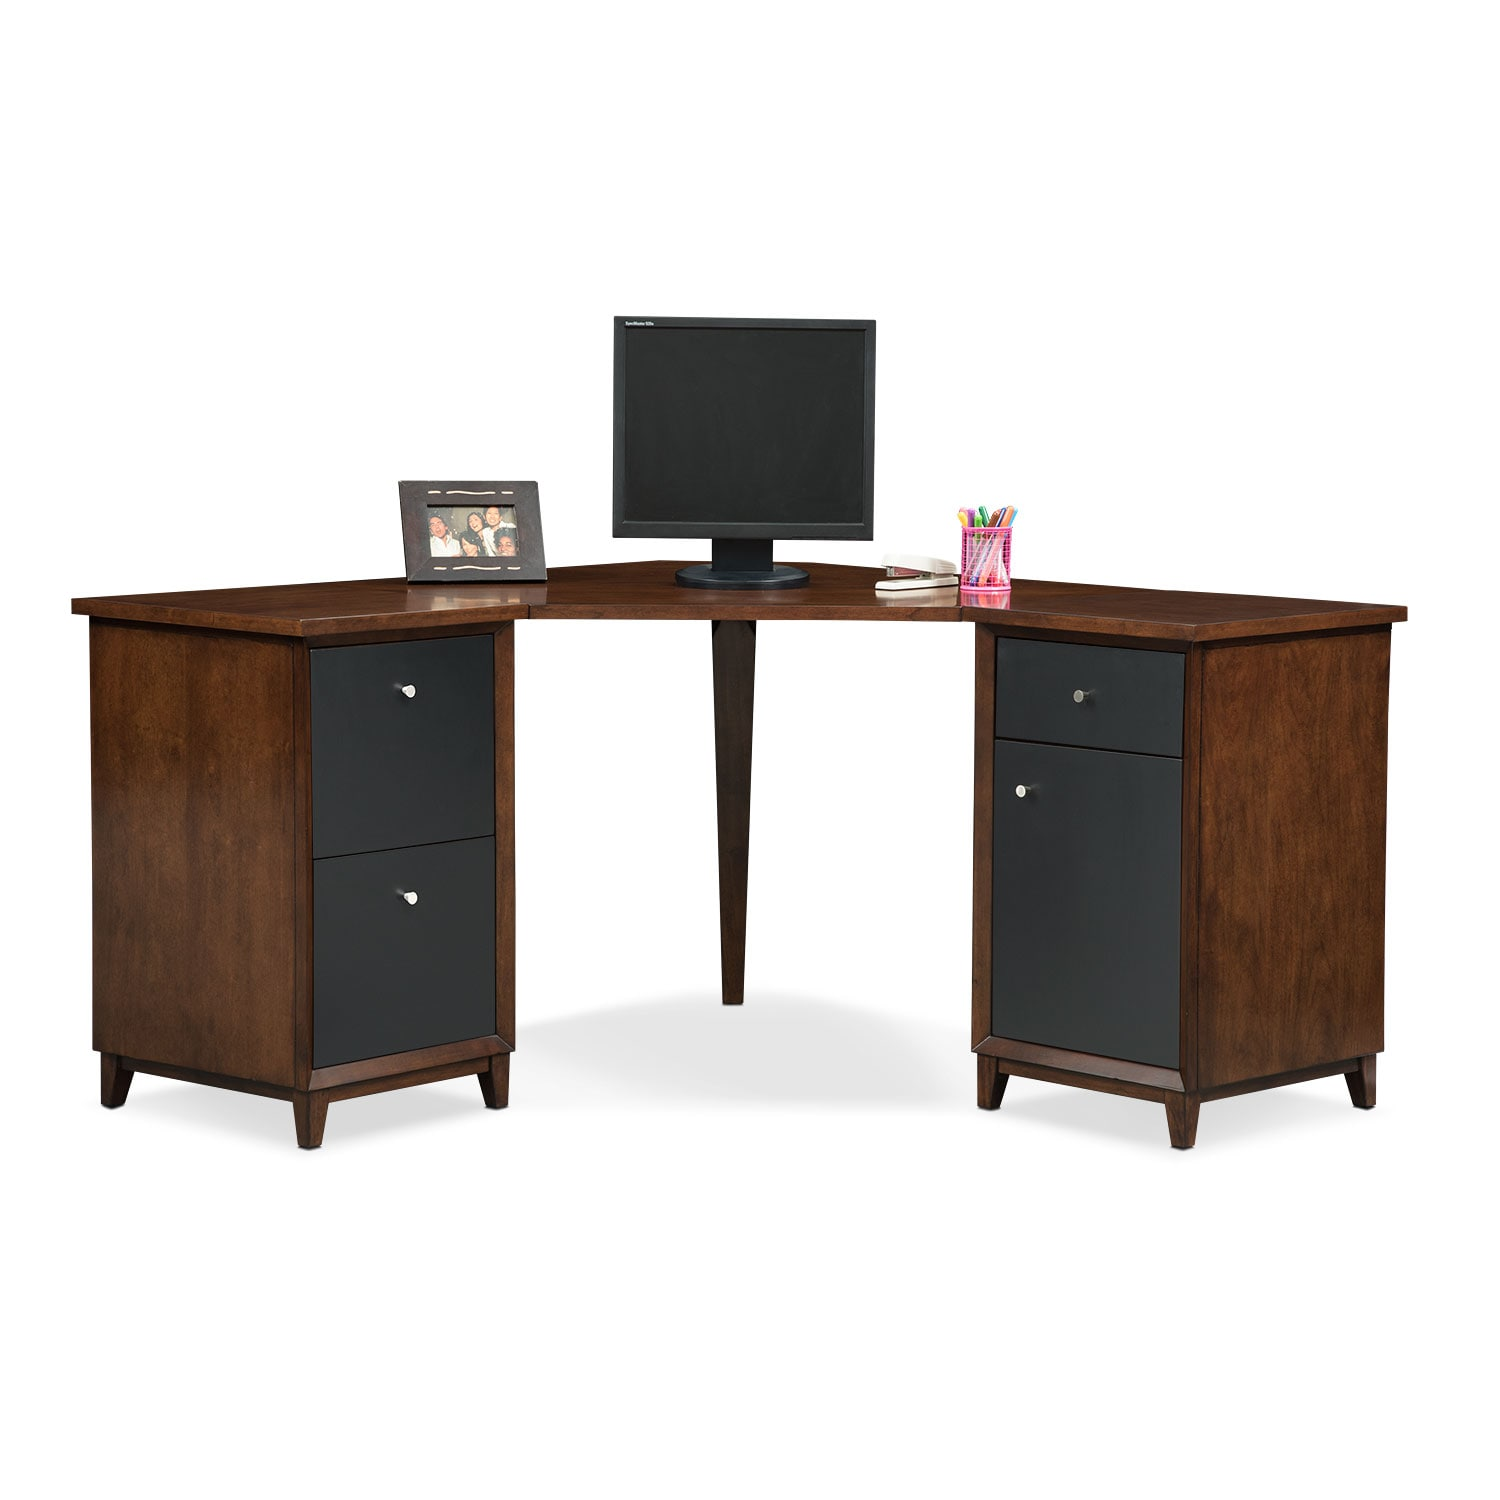 Oslo Corner Desk - Black